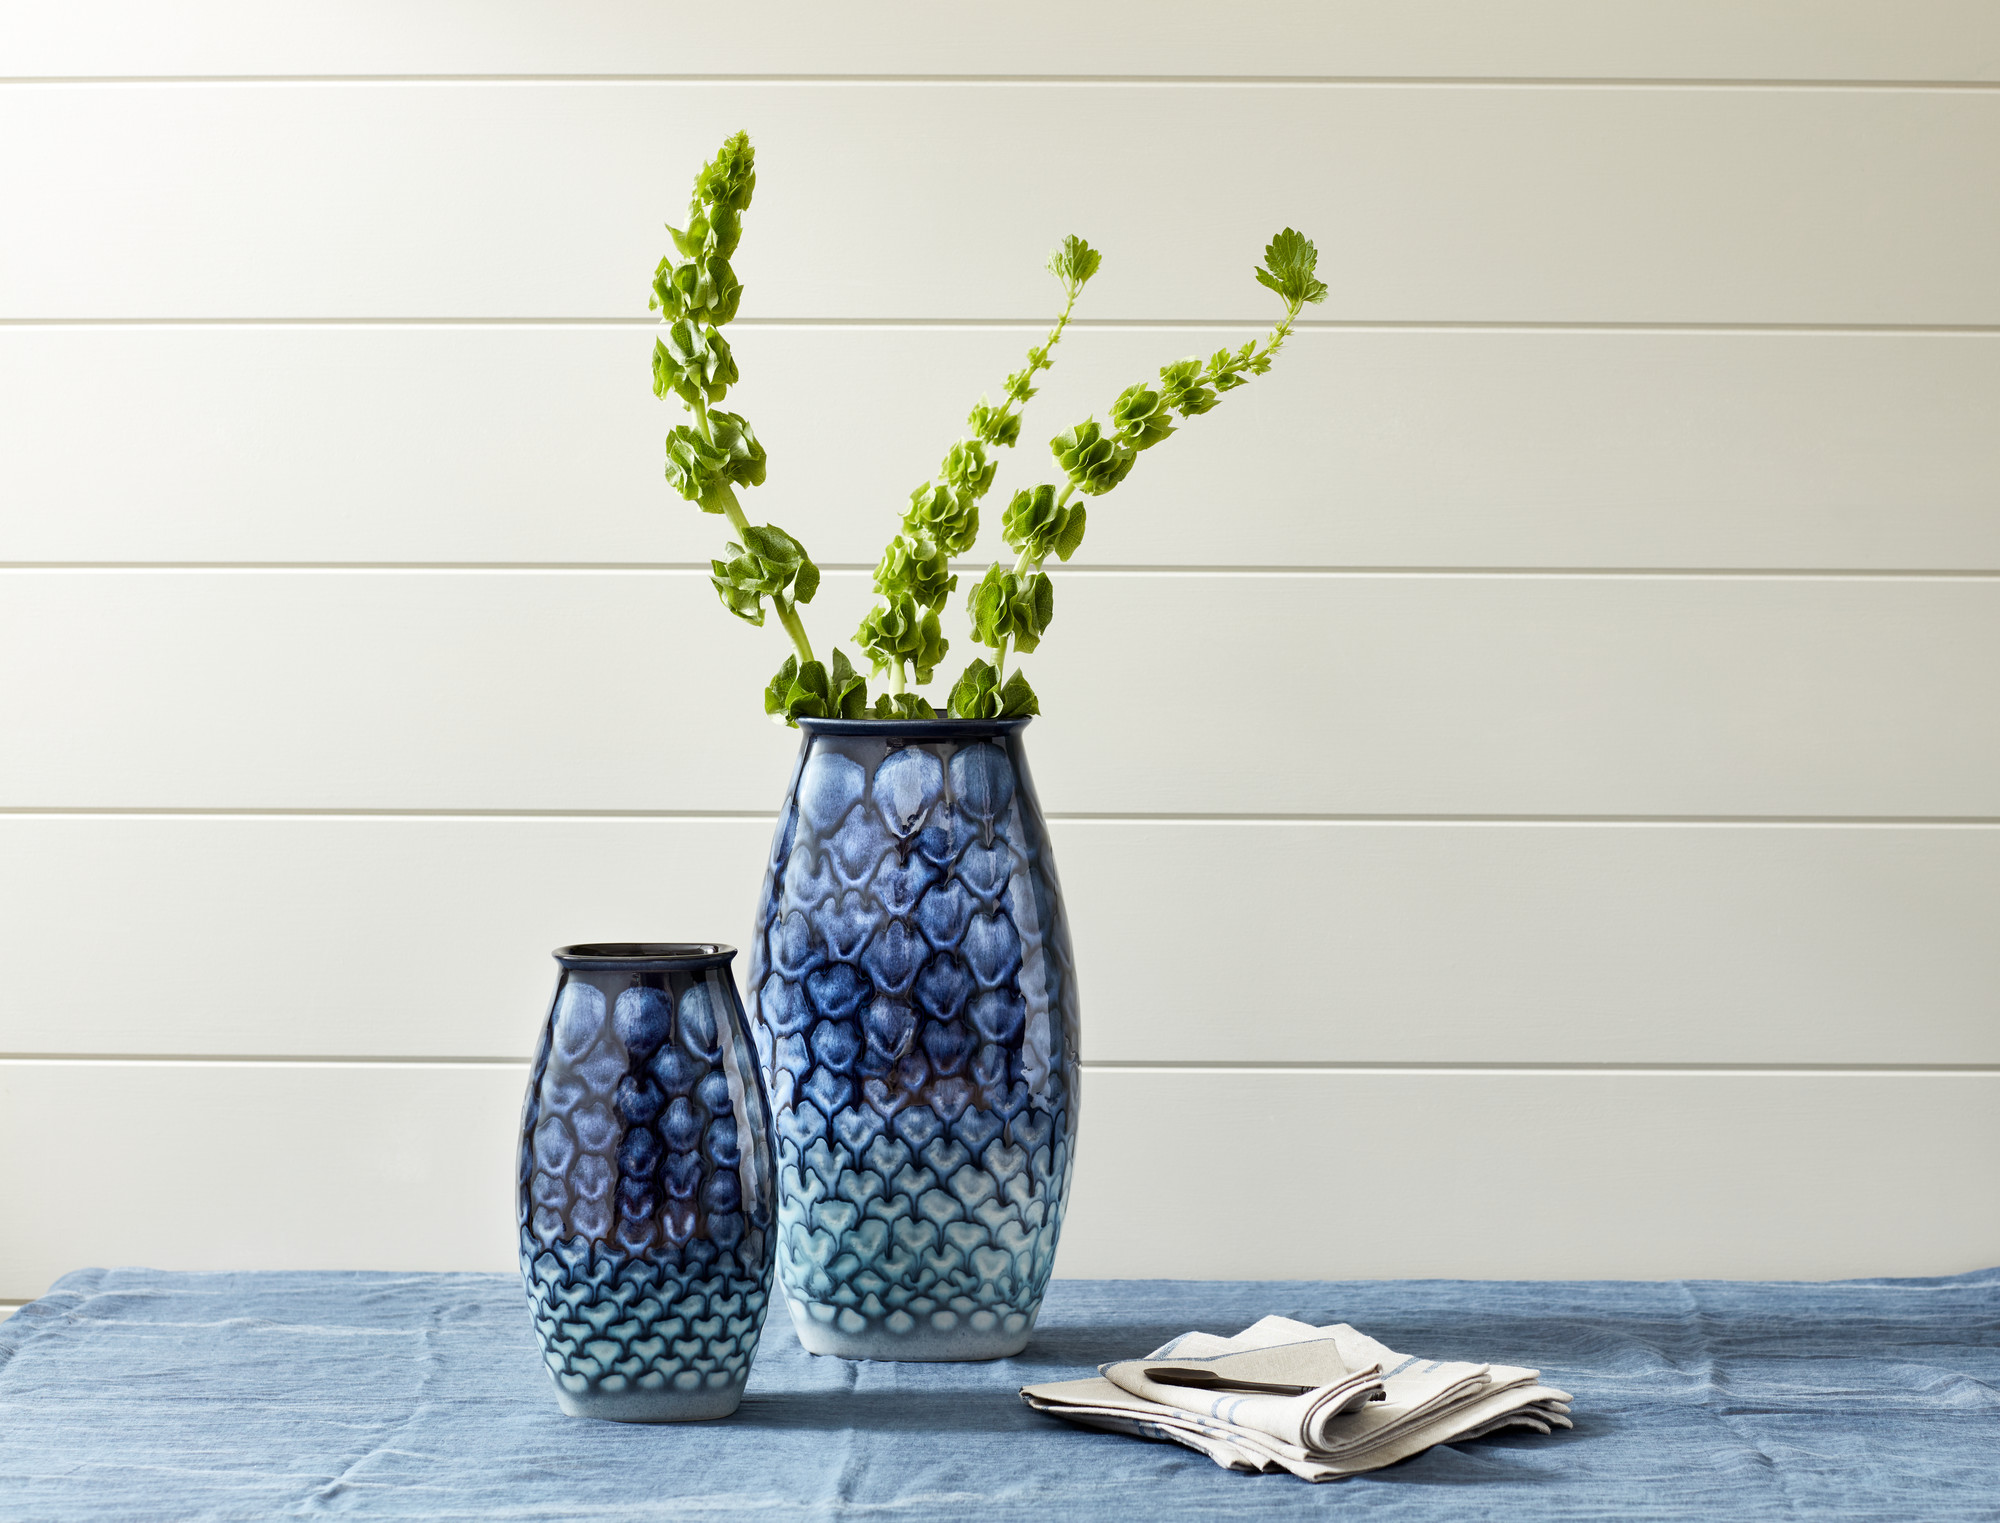 3 Ways to Bring a Touch of Nature into Your Home: Pick out ceramics that are inspired by nature